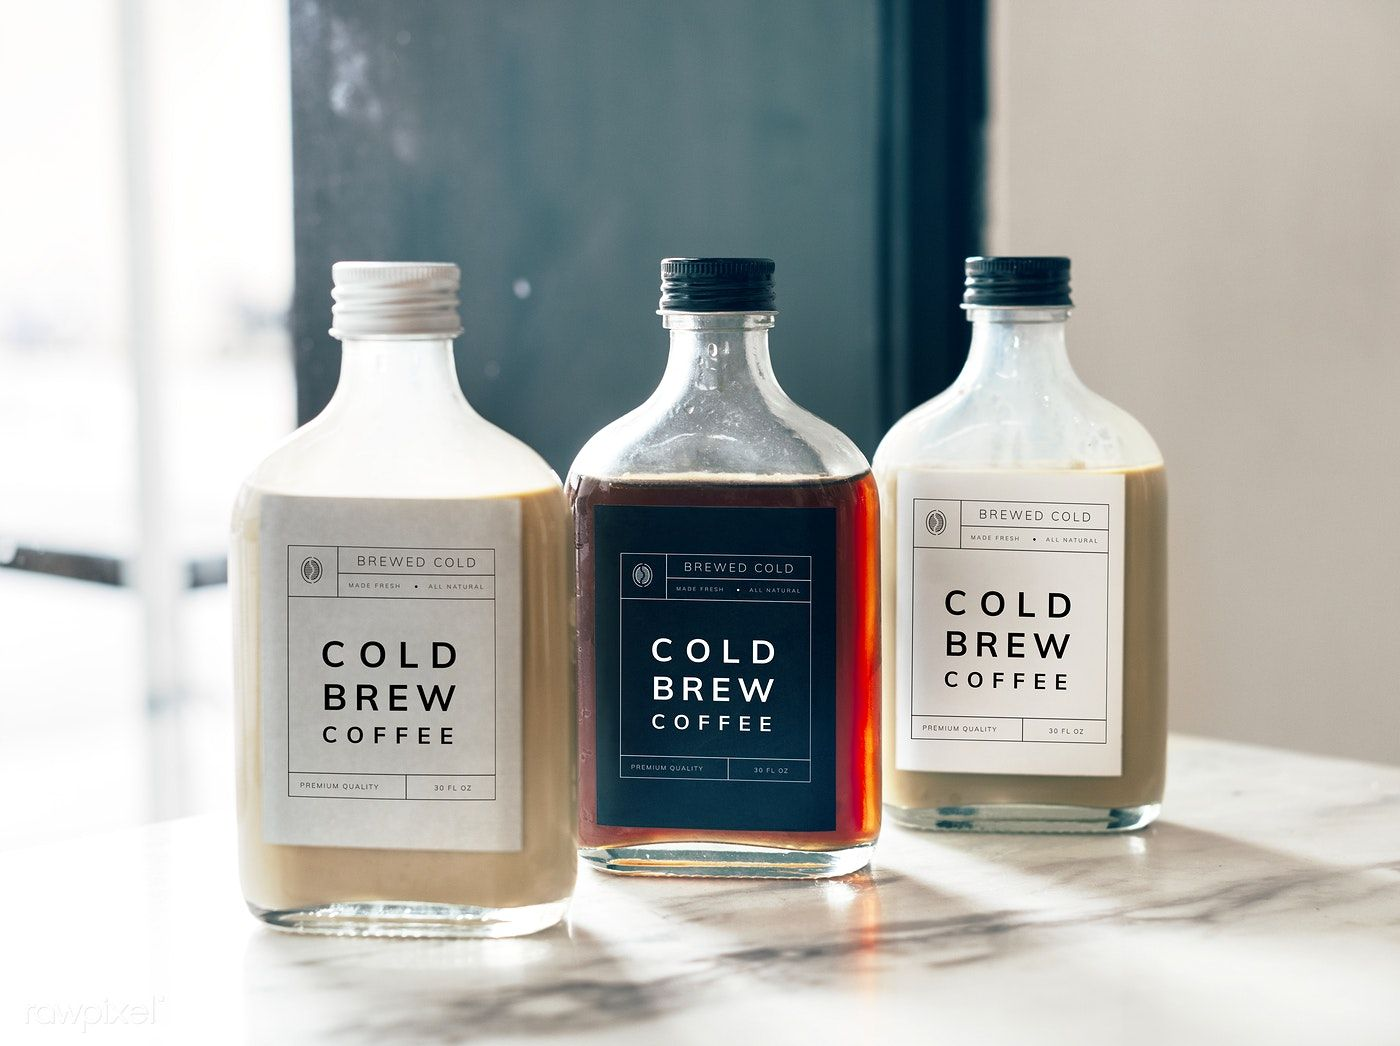 Cold brew coffee bottle mockup design free image by